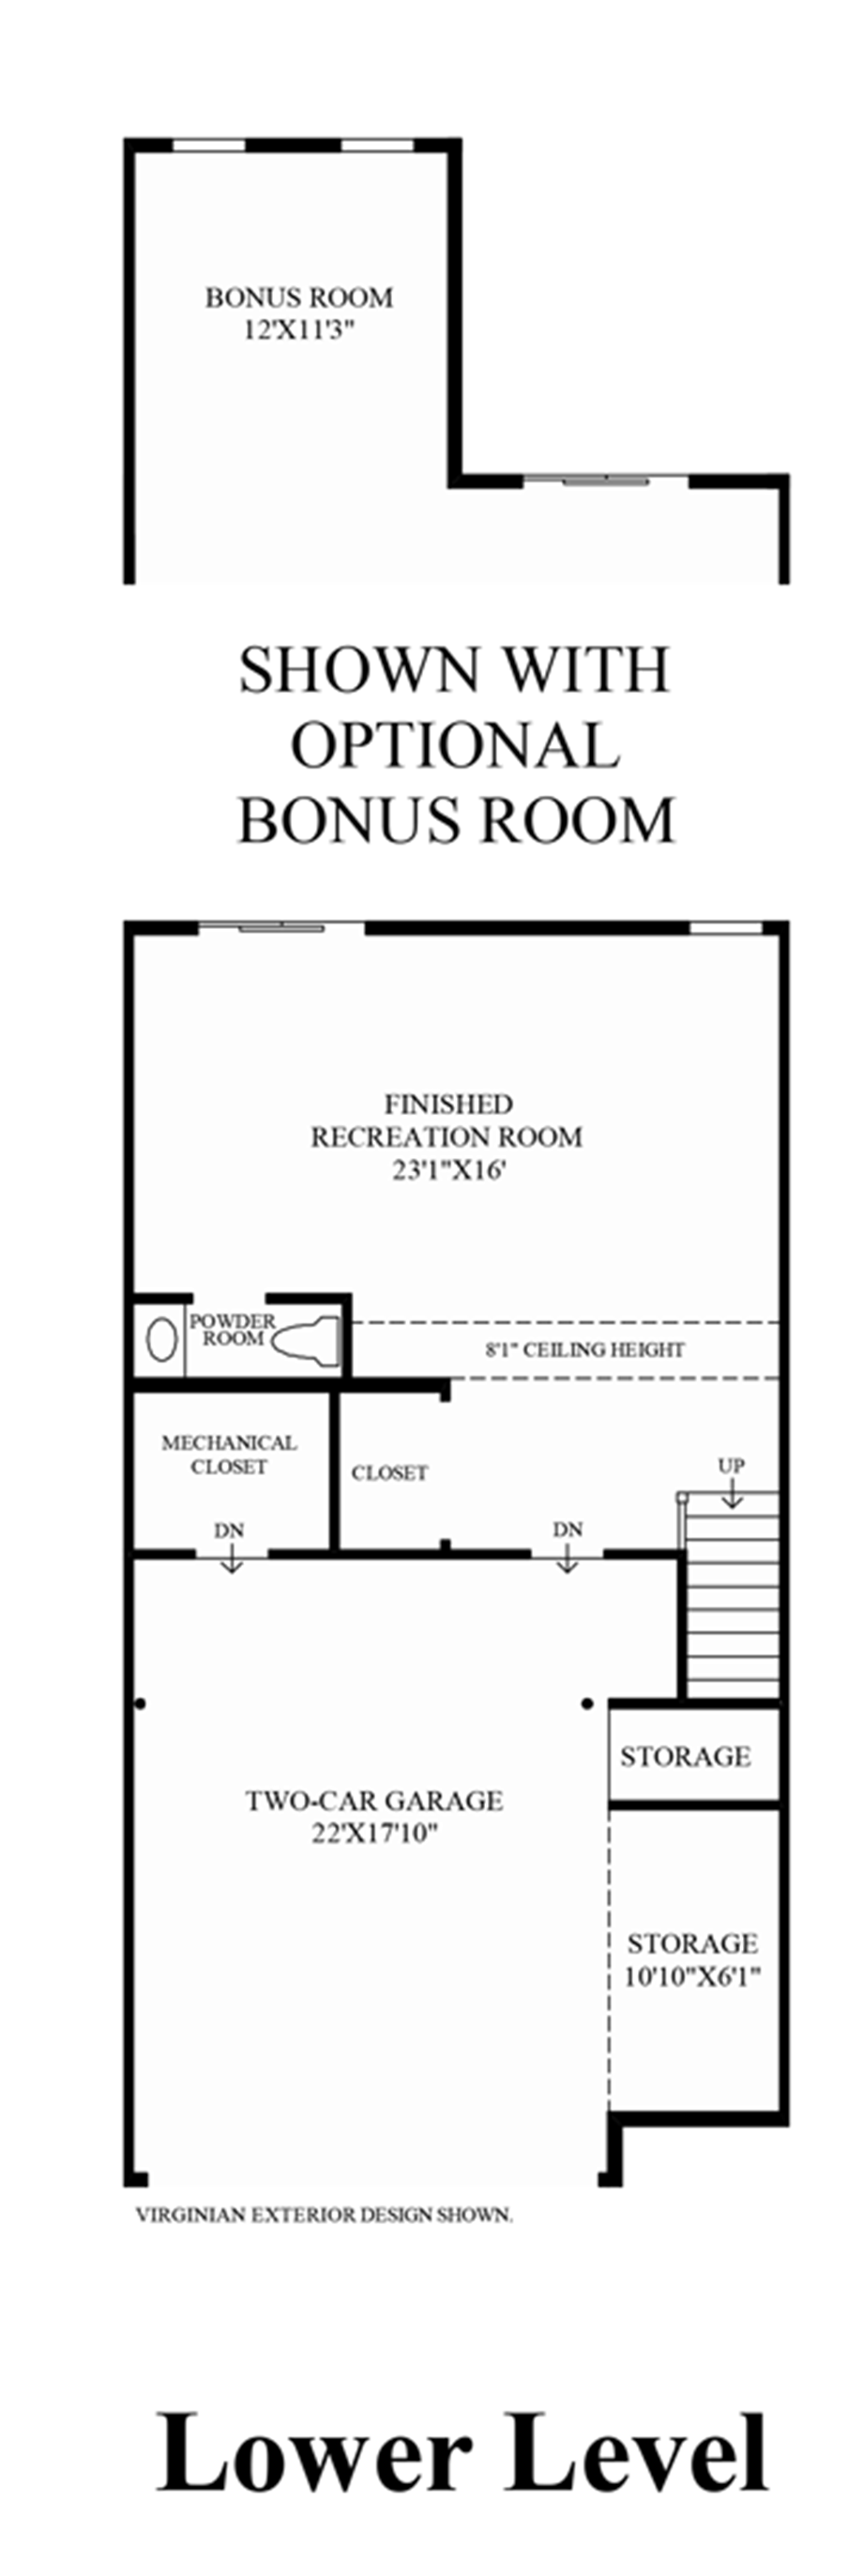 Lower Level (Living Level Entry) Floor Plan